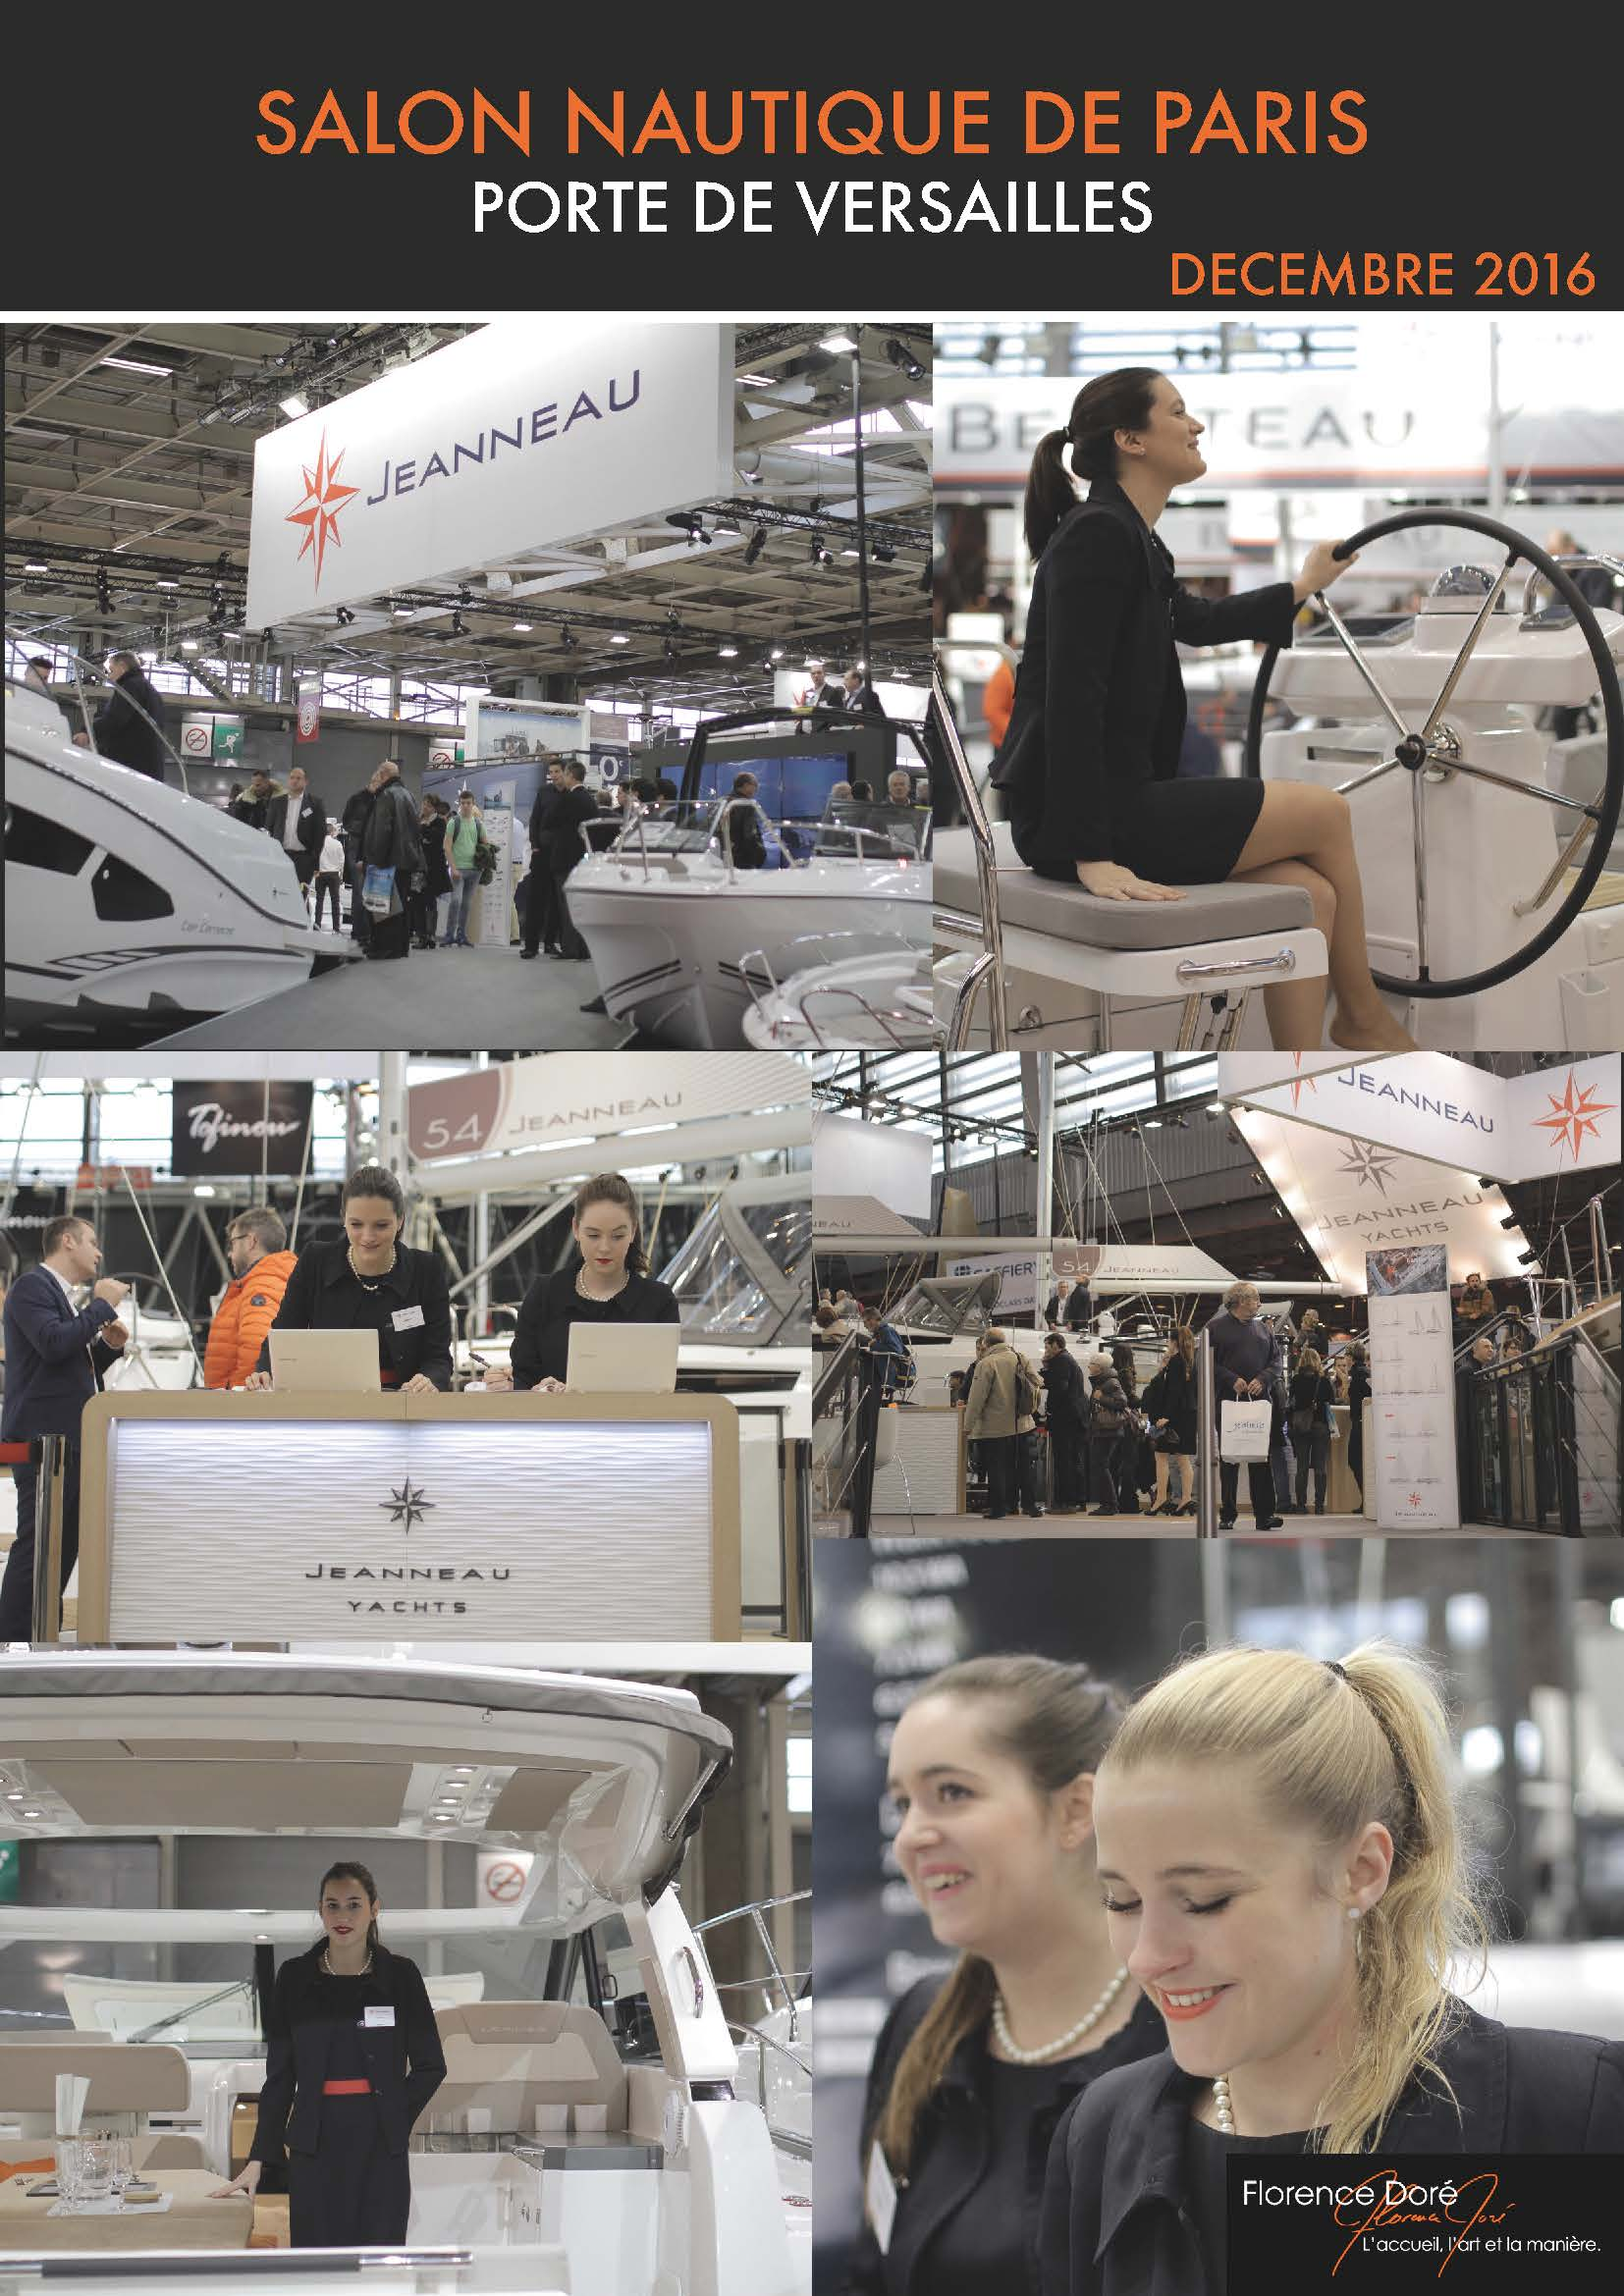 florence dor salon nautique international de paris 2016